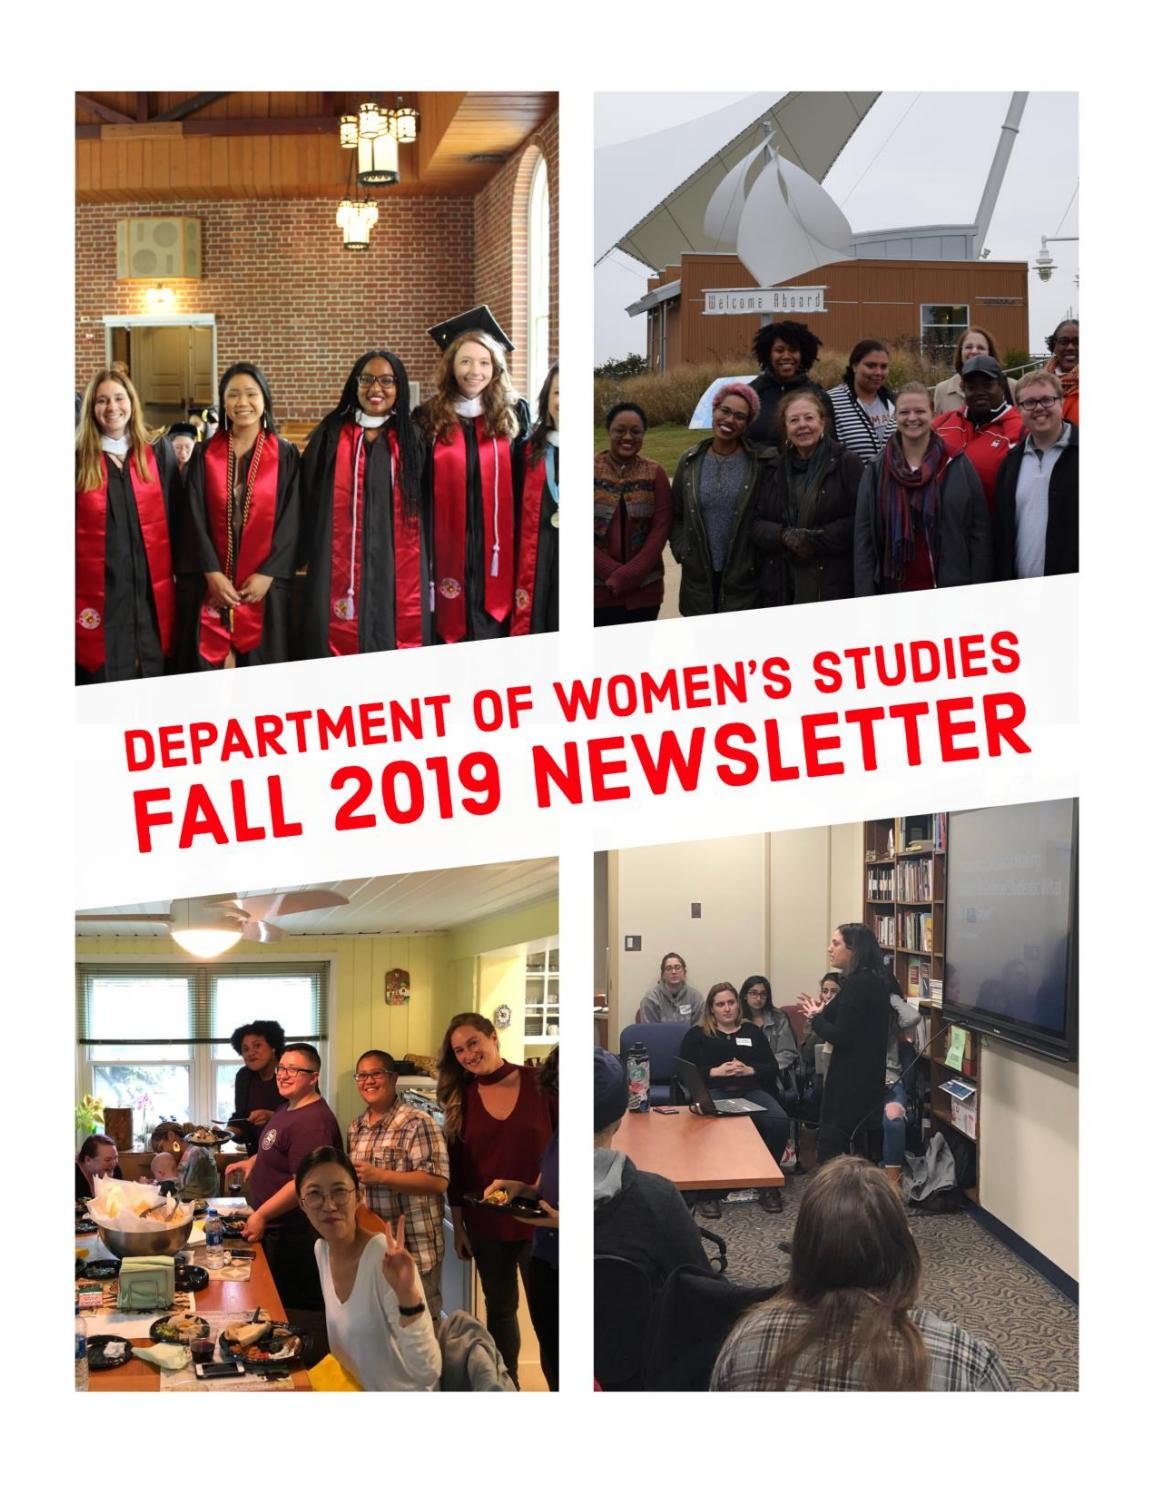 Umd Academic Calendar Fall 2020.Umd Department Of Women S Studies 2019 Fall Newsletter By